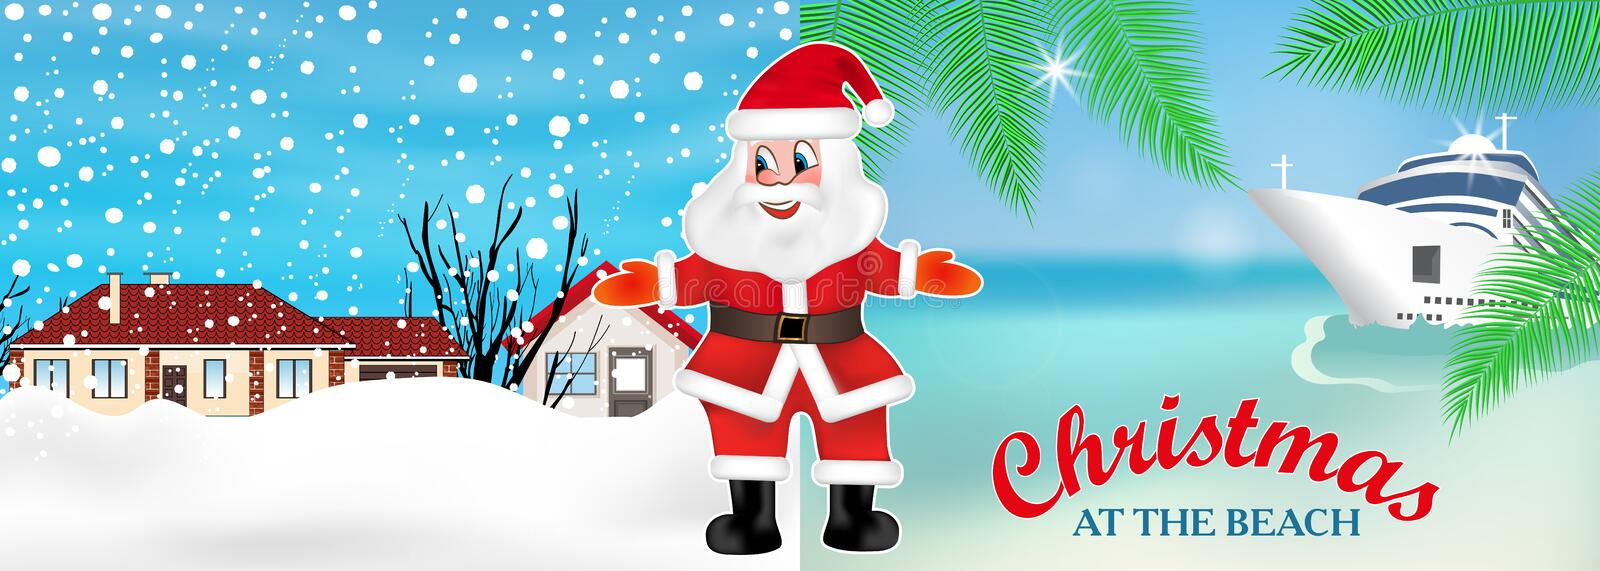 Santa Claus invites from winter to summer to celebrate Christmas on the beach. New Year cruis. Vector royalty free illustration